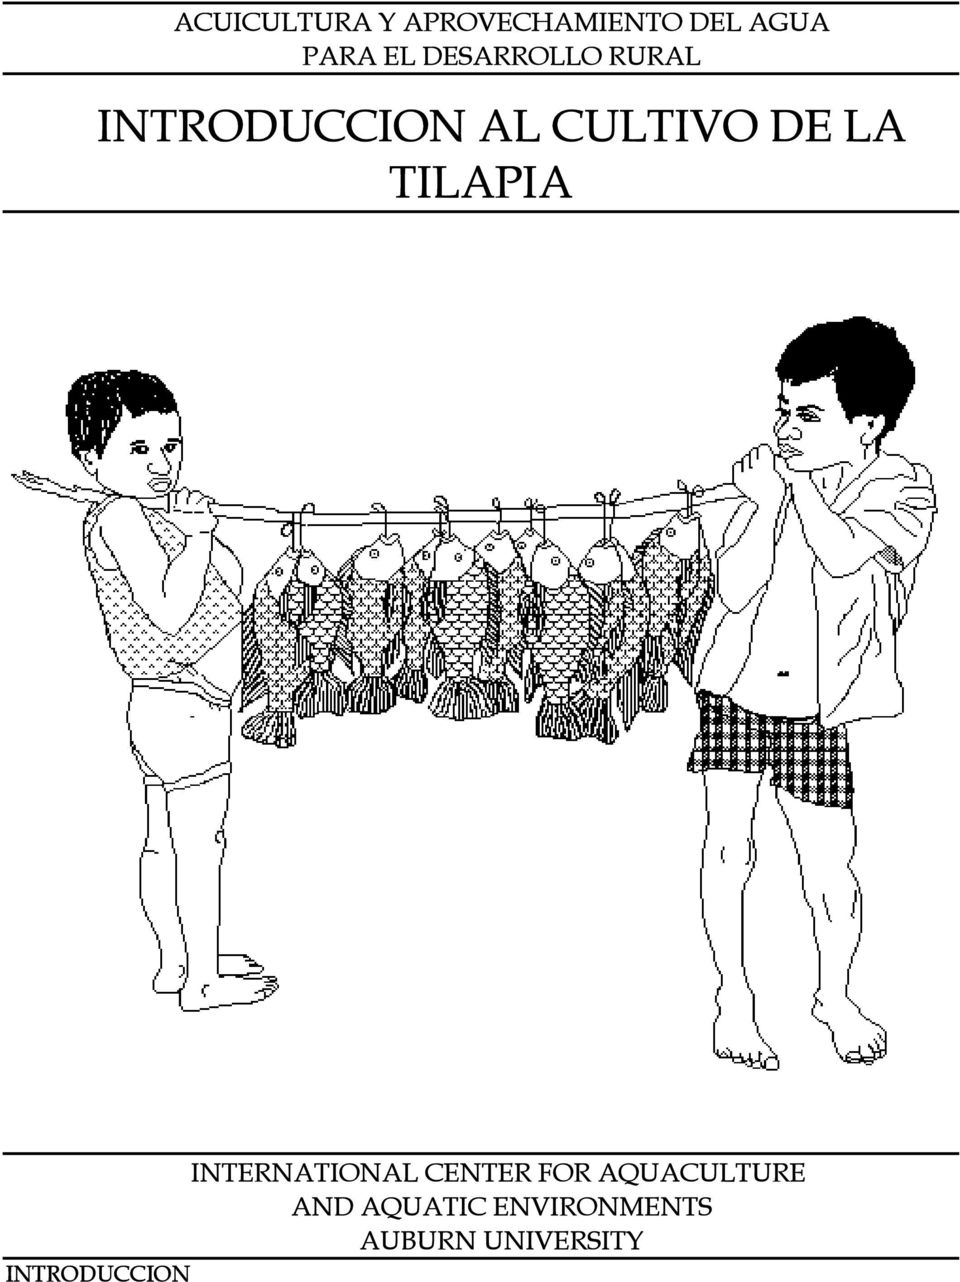 TILAPIA INTERNATIONAL CENTER FOR AQUACULTURE AND